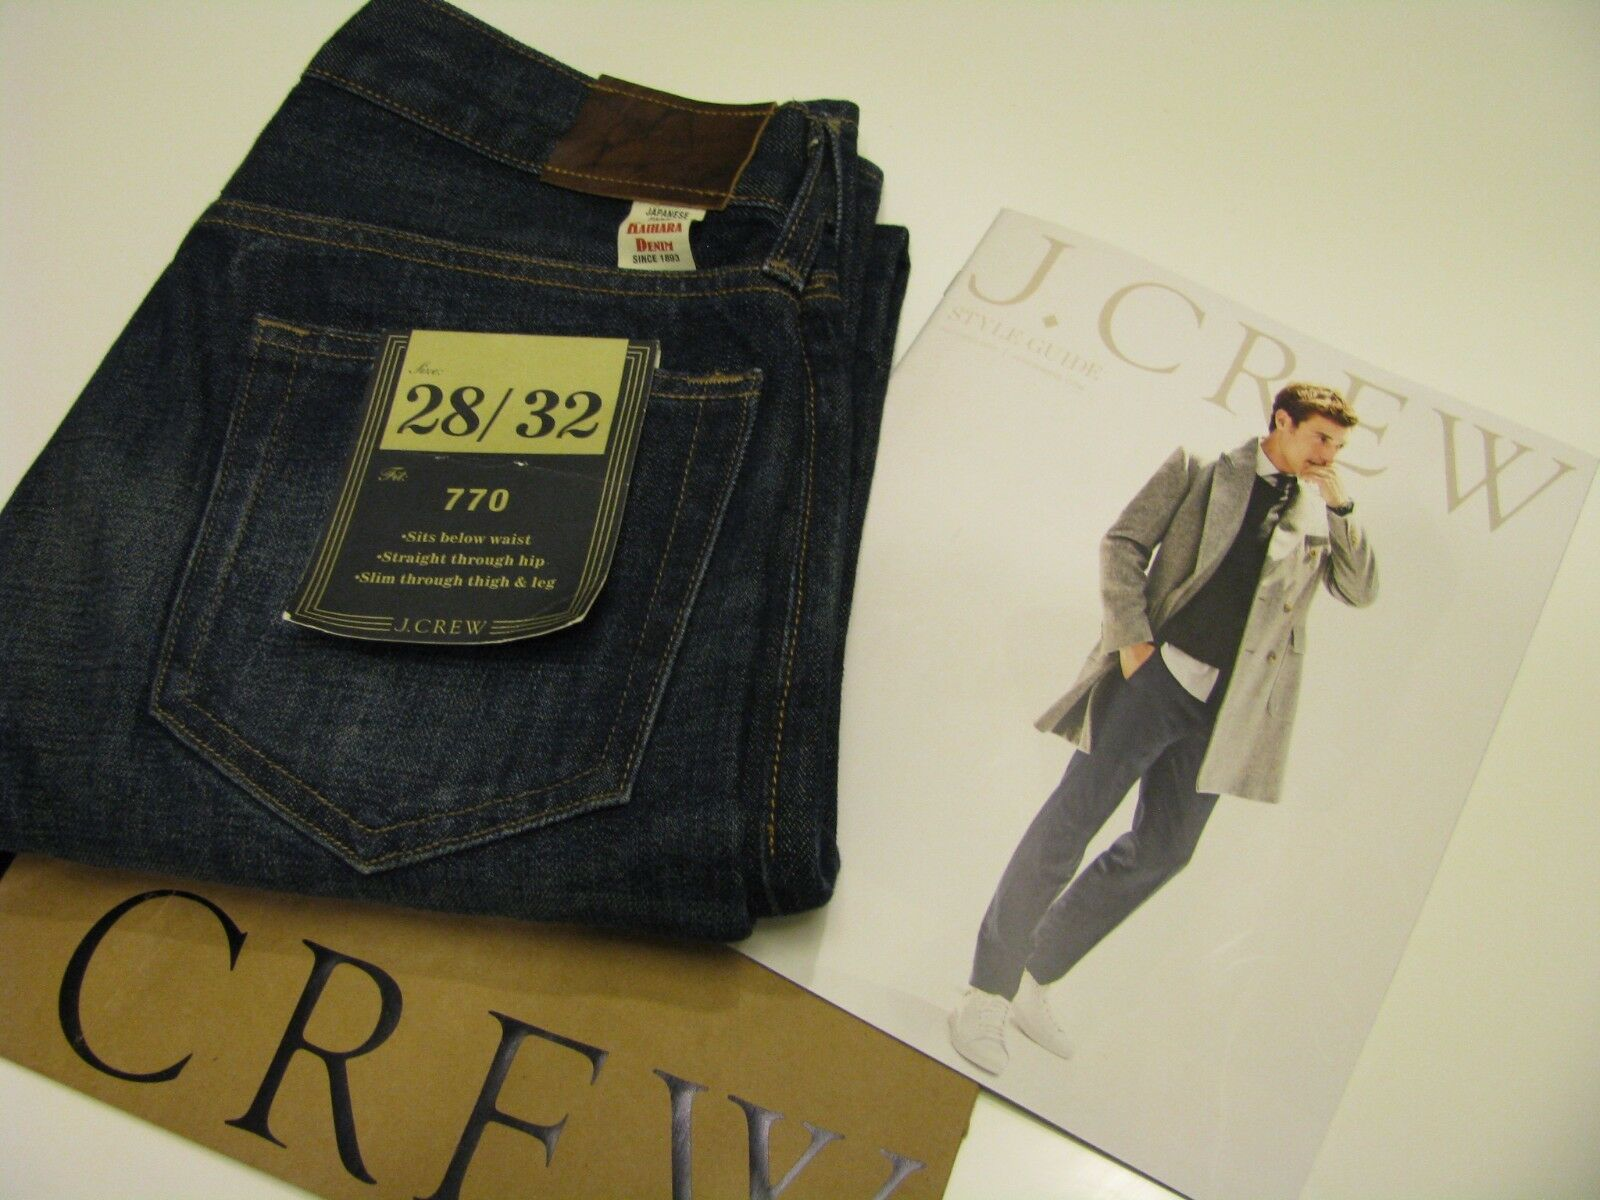 NWT J.CREW 770 JAPANESE DENIM JEAN IN VINTAGE DARK INDIGO WASH SZ 28  32